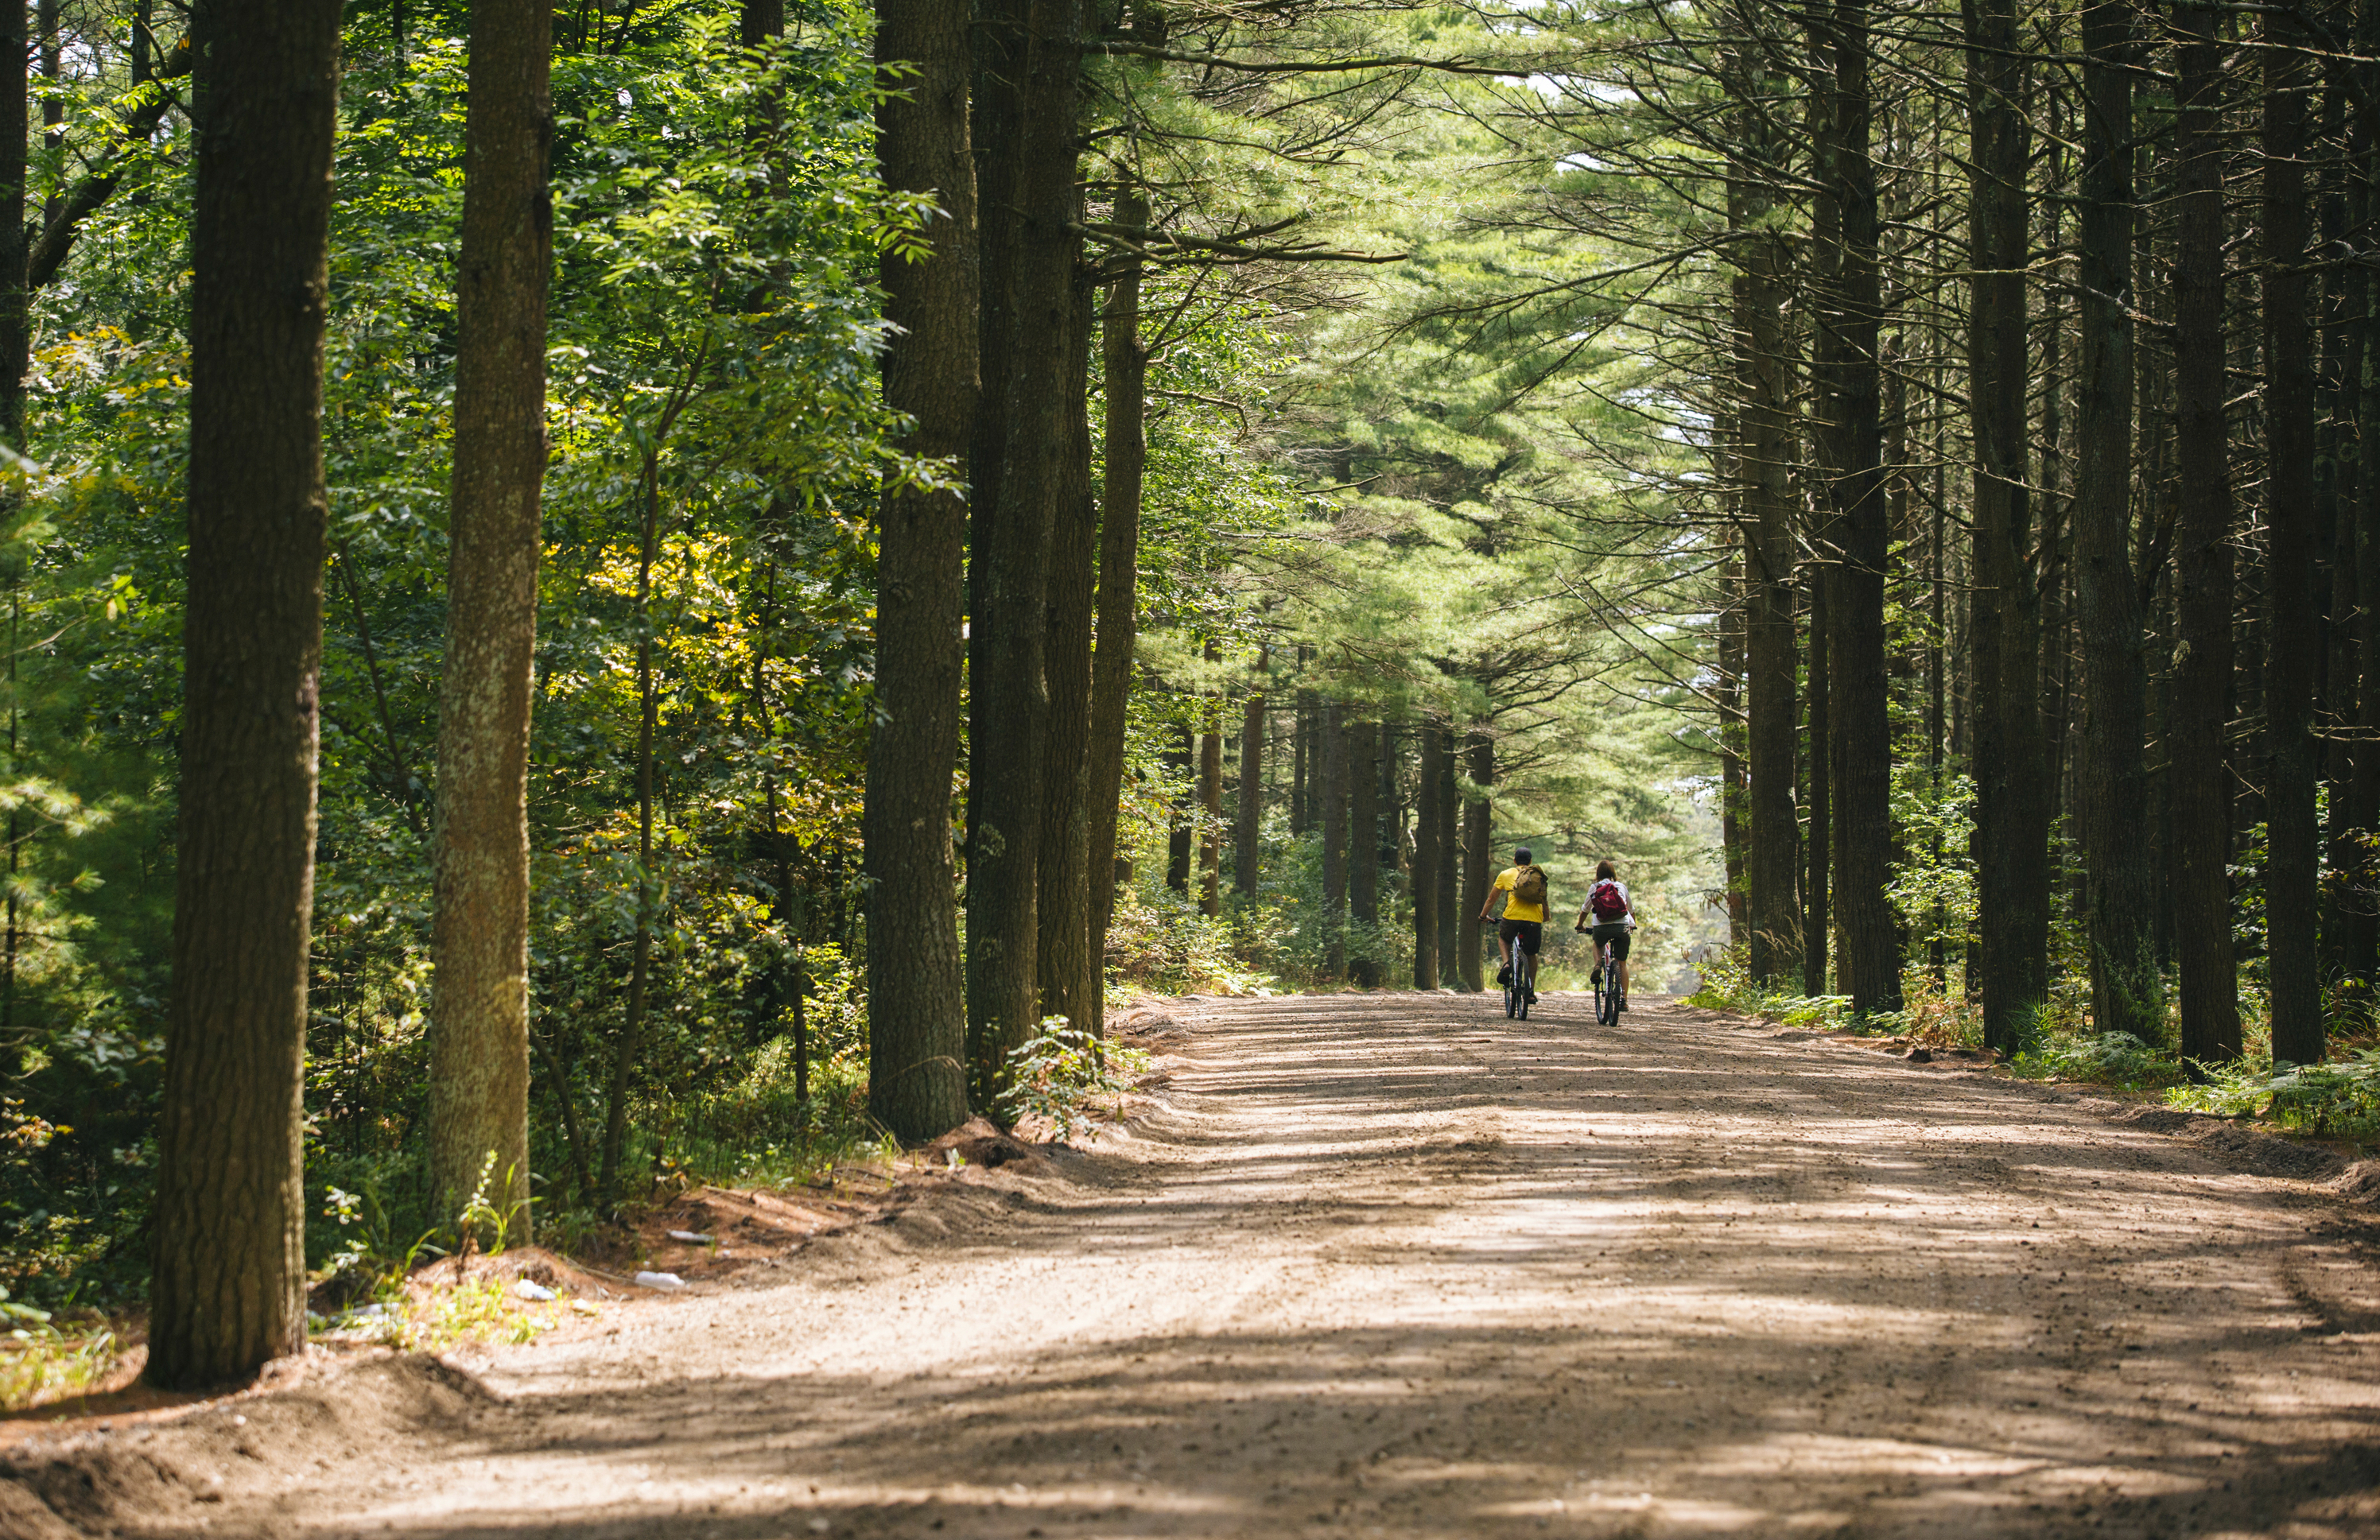 Biking Old Sandwich Road - The Oldest Unpaved Road in Continuous Use in the US